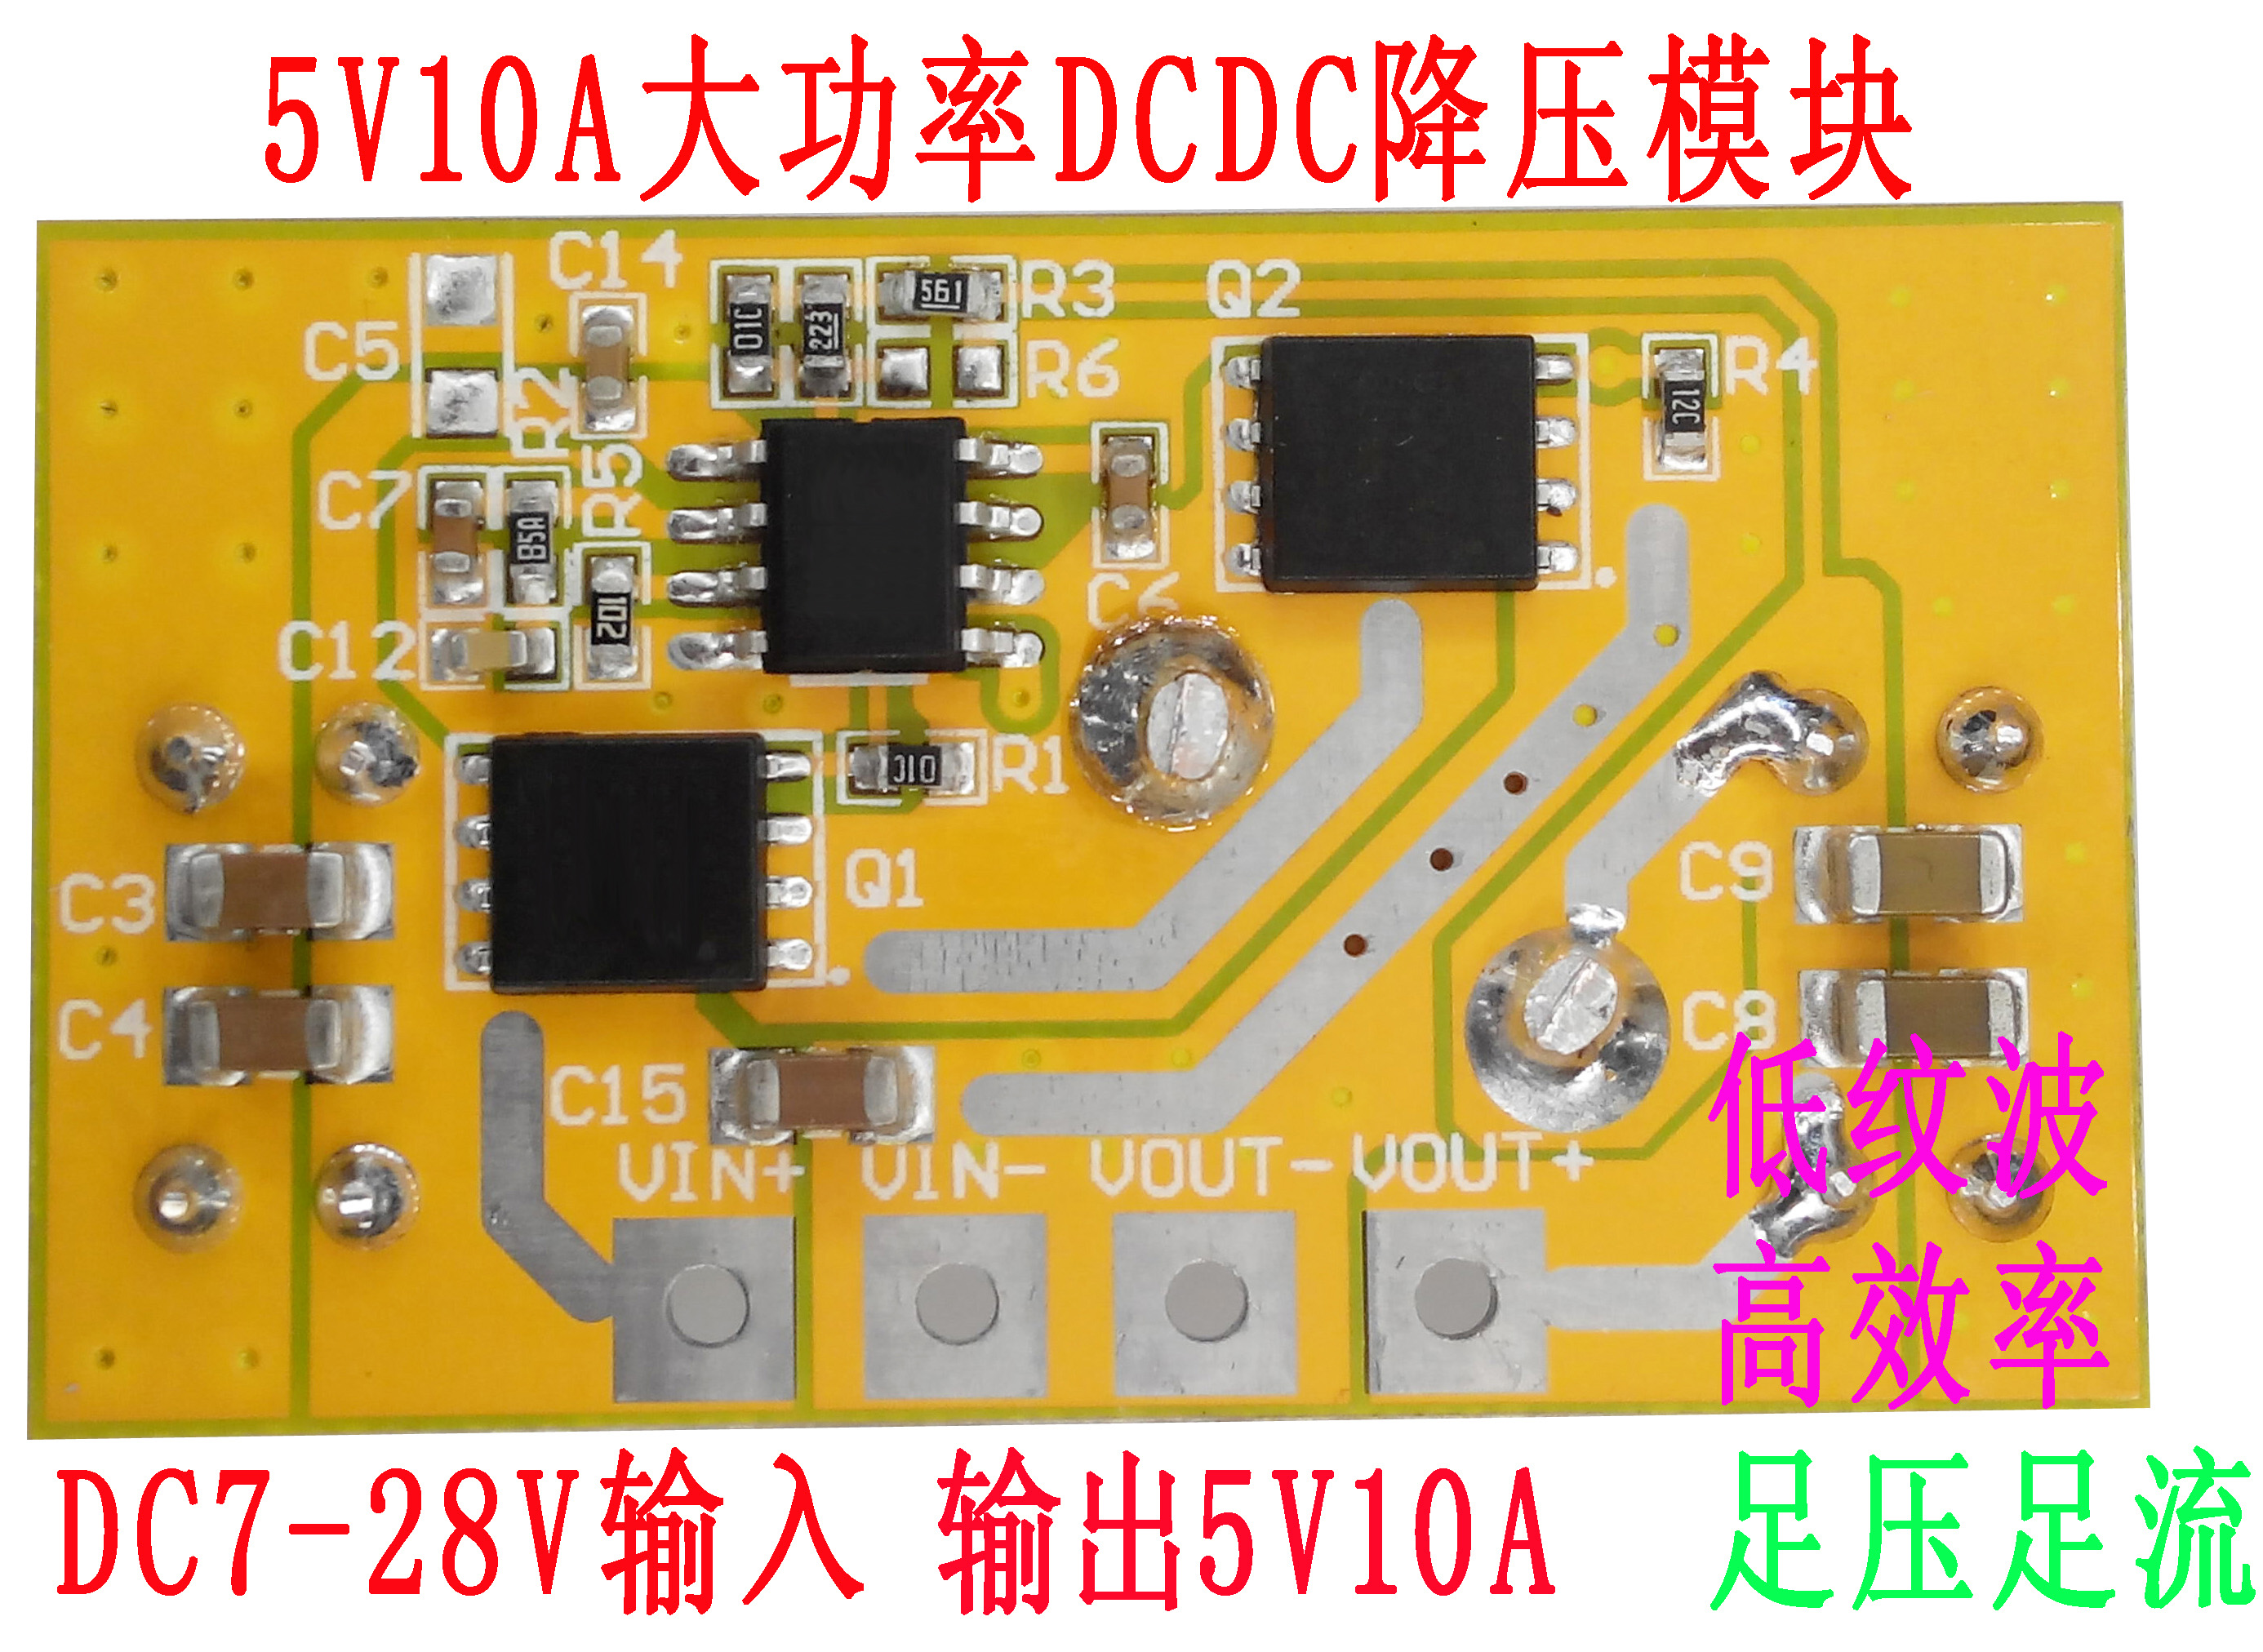 5V10A DC-DC High-power Buck Module, On-board Power Supply, 24V to 5V Power, 12V to 5V Module dc dc lm2596 adjustable power buck module 24v to 48v 12v 24v turn 12v 5v